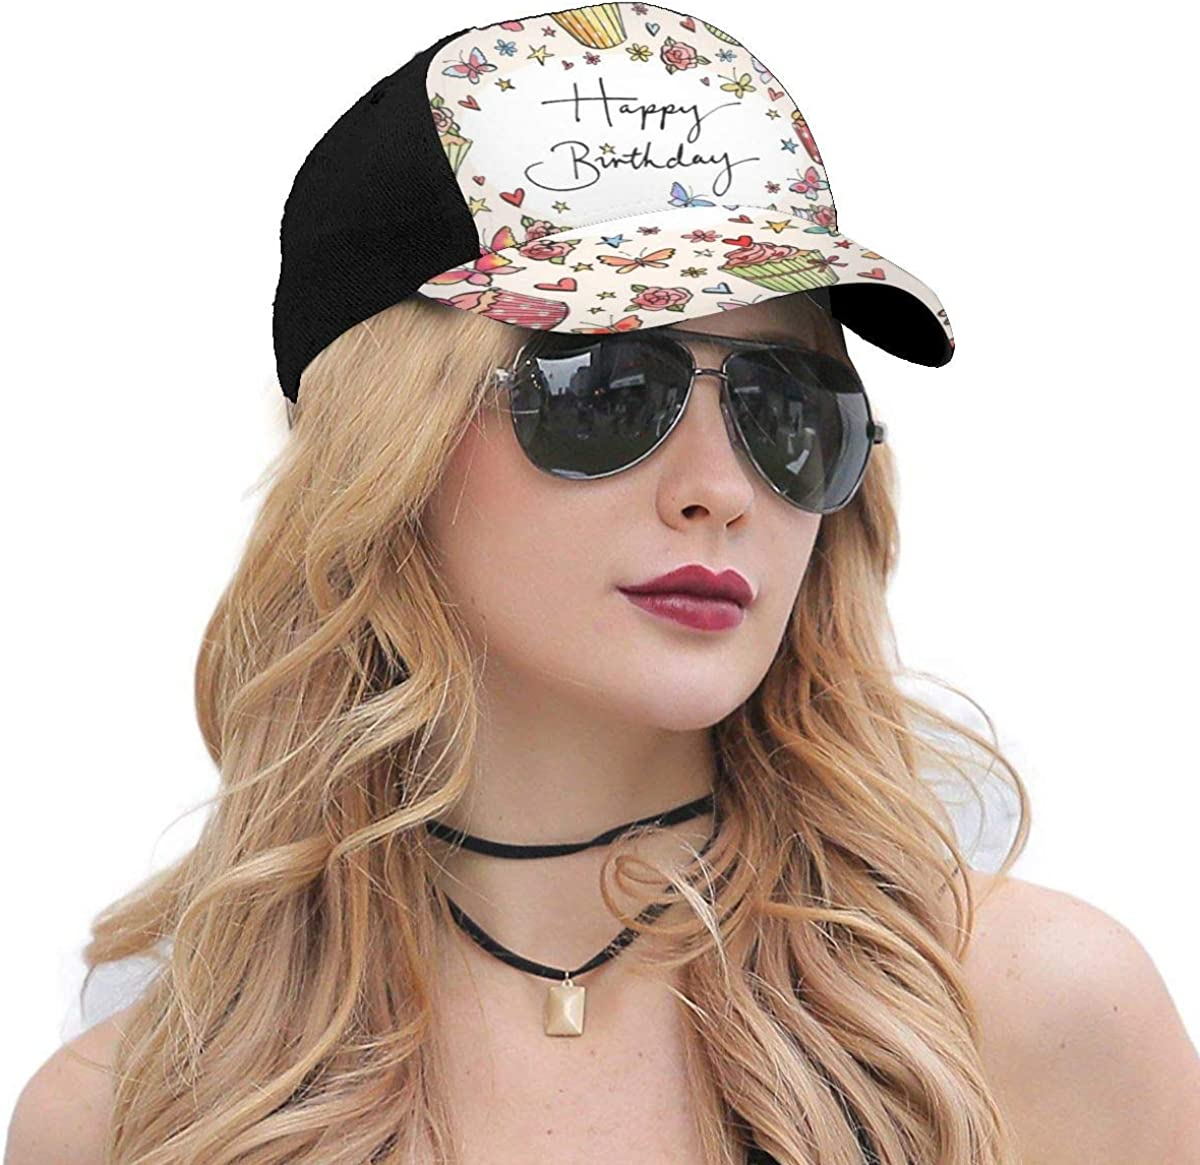 Happy Birthday Butterfly Cake Classic Baseball Cap Men Women Dad Hat Twill Adjustable Size Black